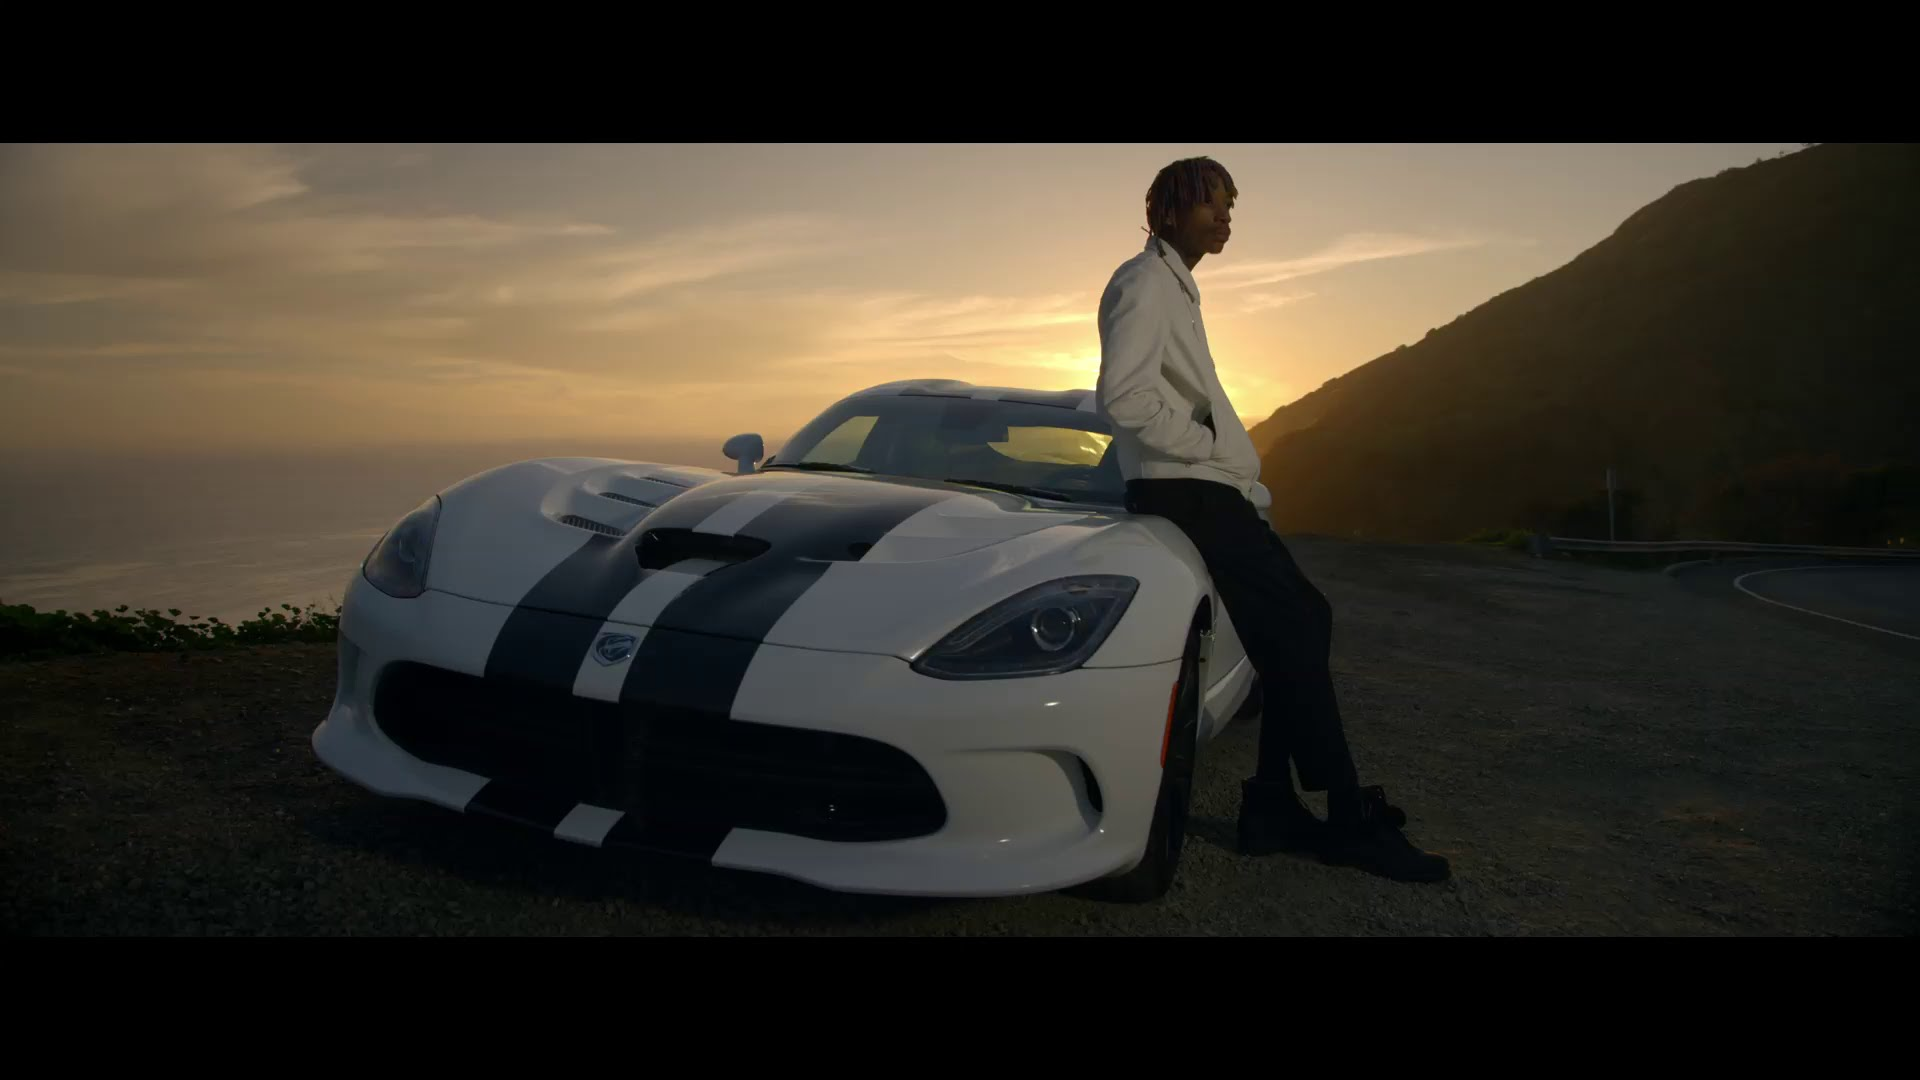 Wiz Khalifa - See You Again ft. Charlie Puth [Official Video] Furious 7 Soundtrack 6